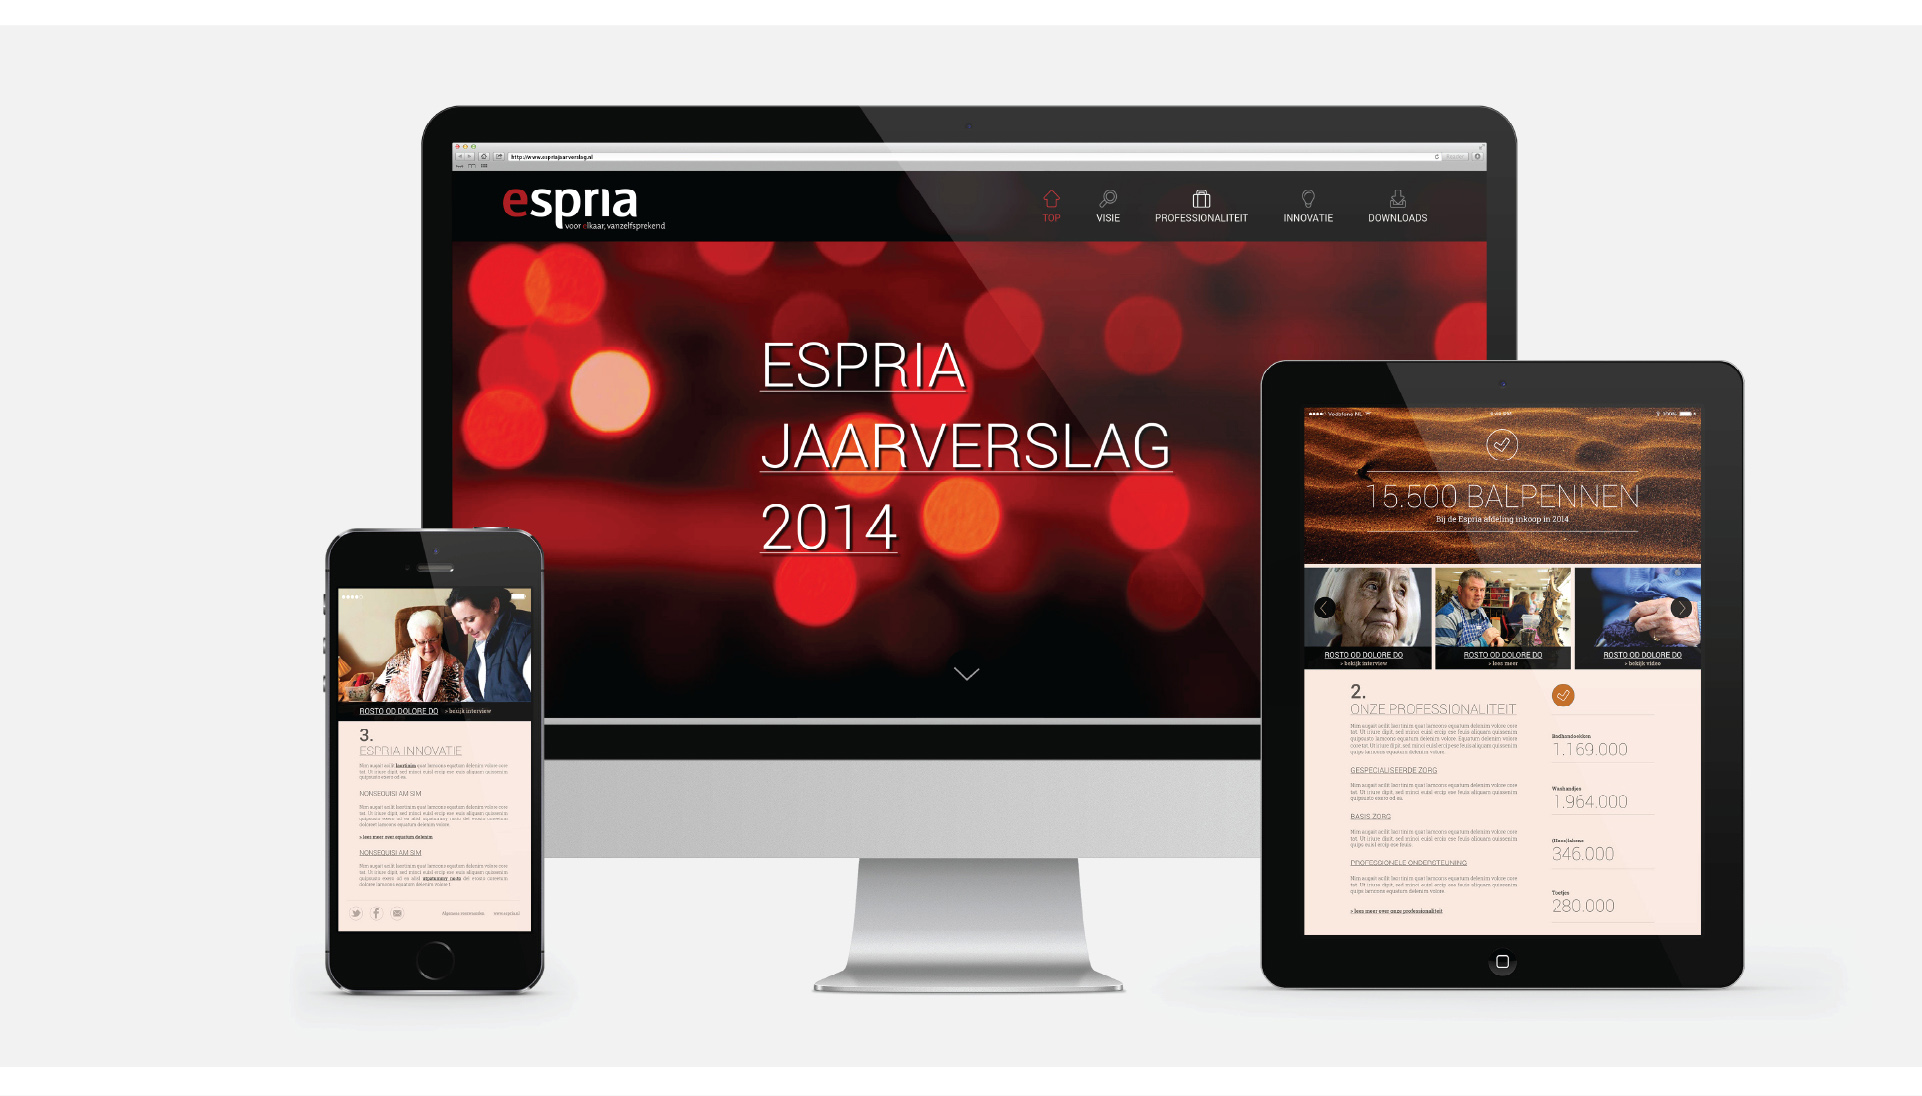 Espria_jaarverslag_website